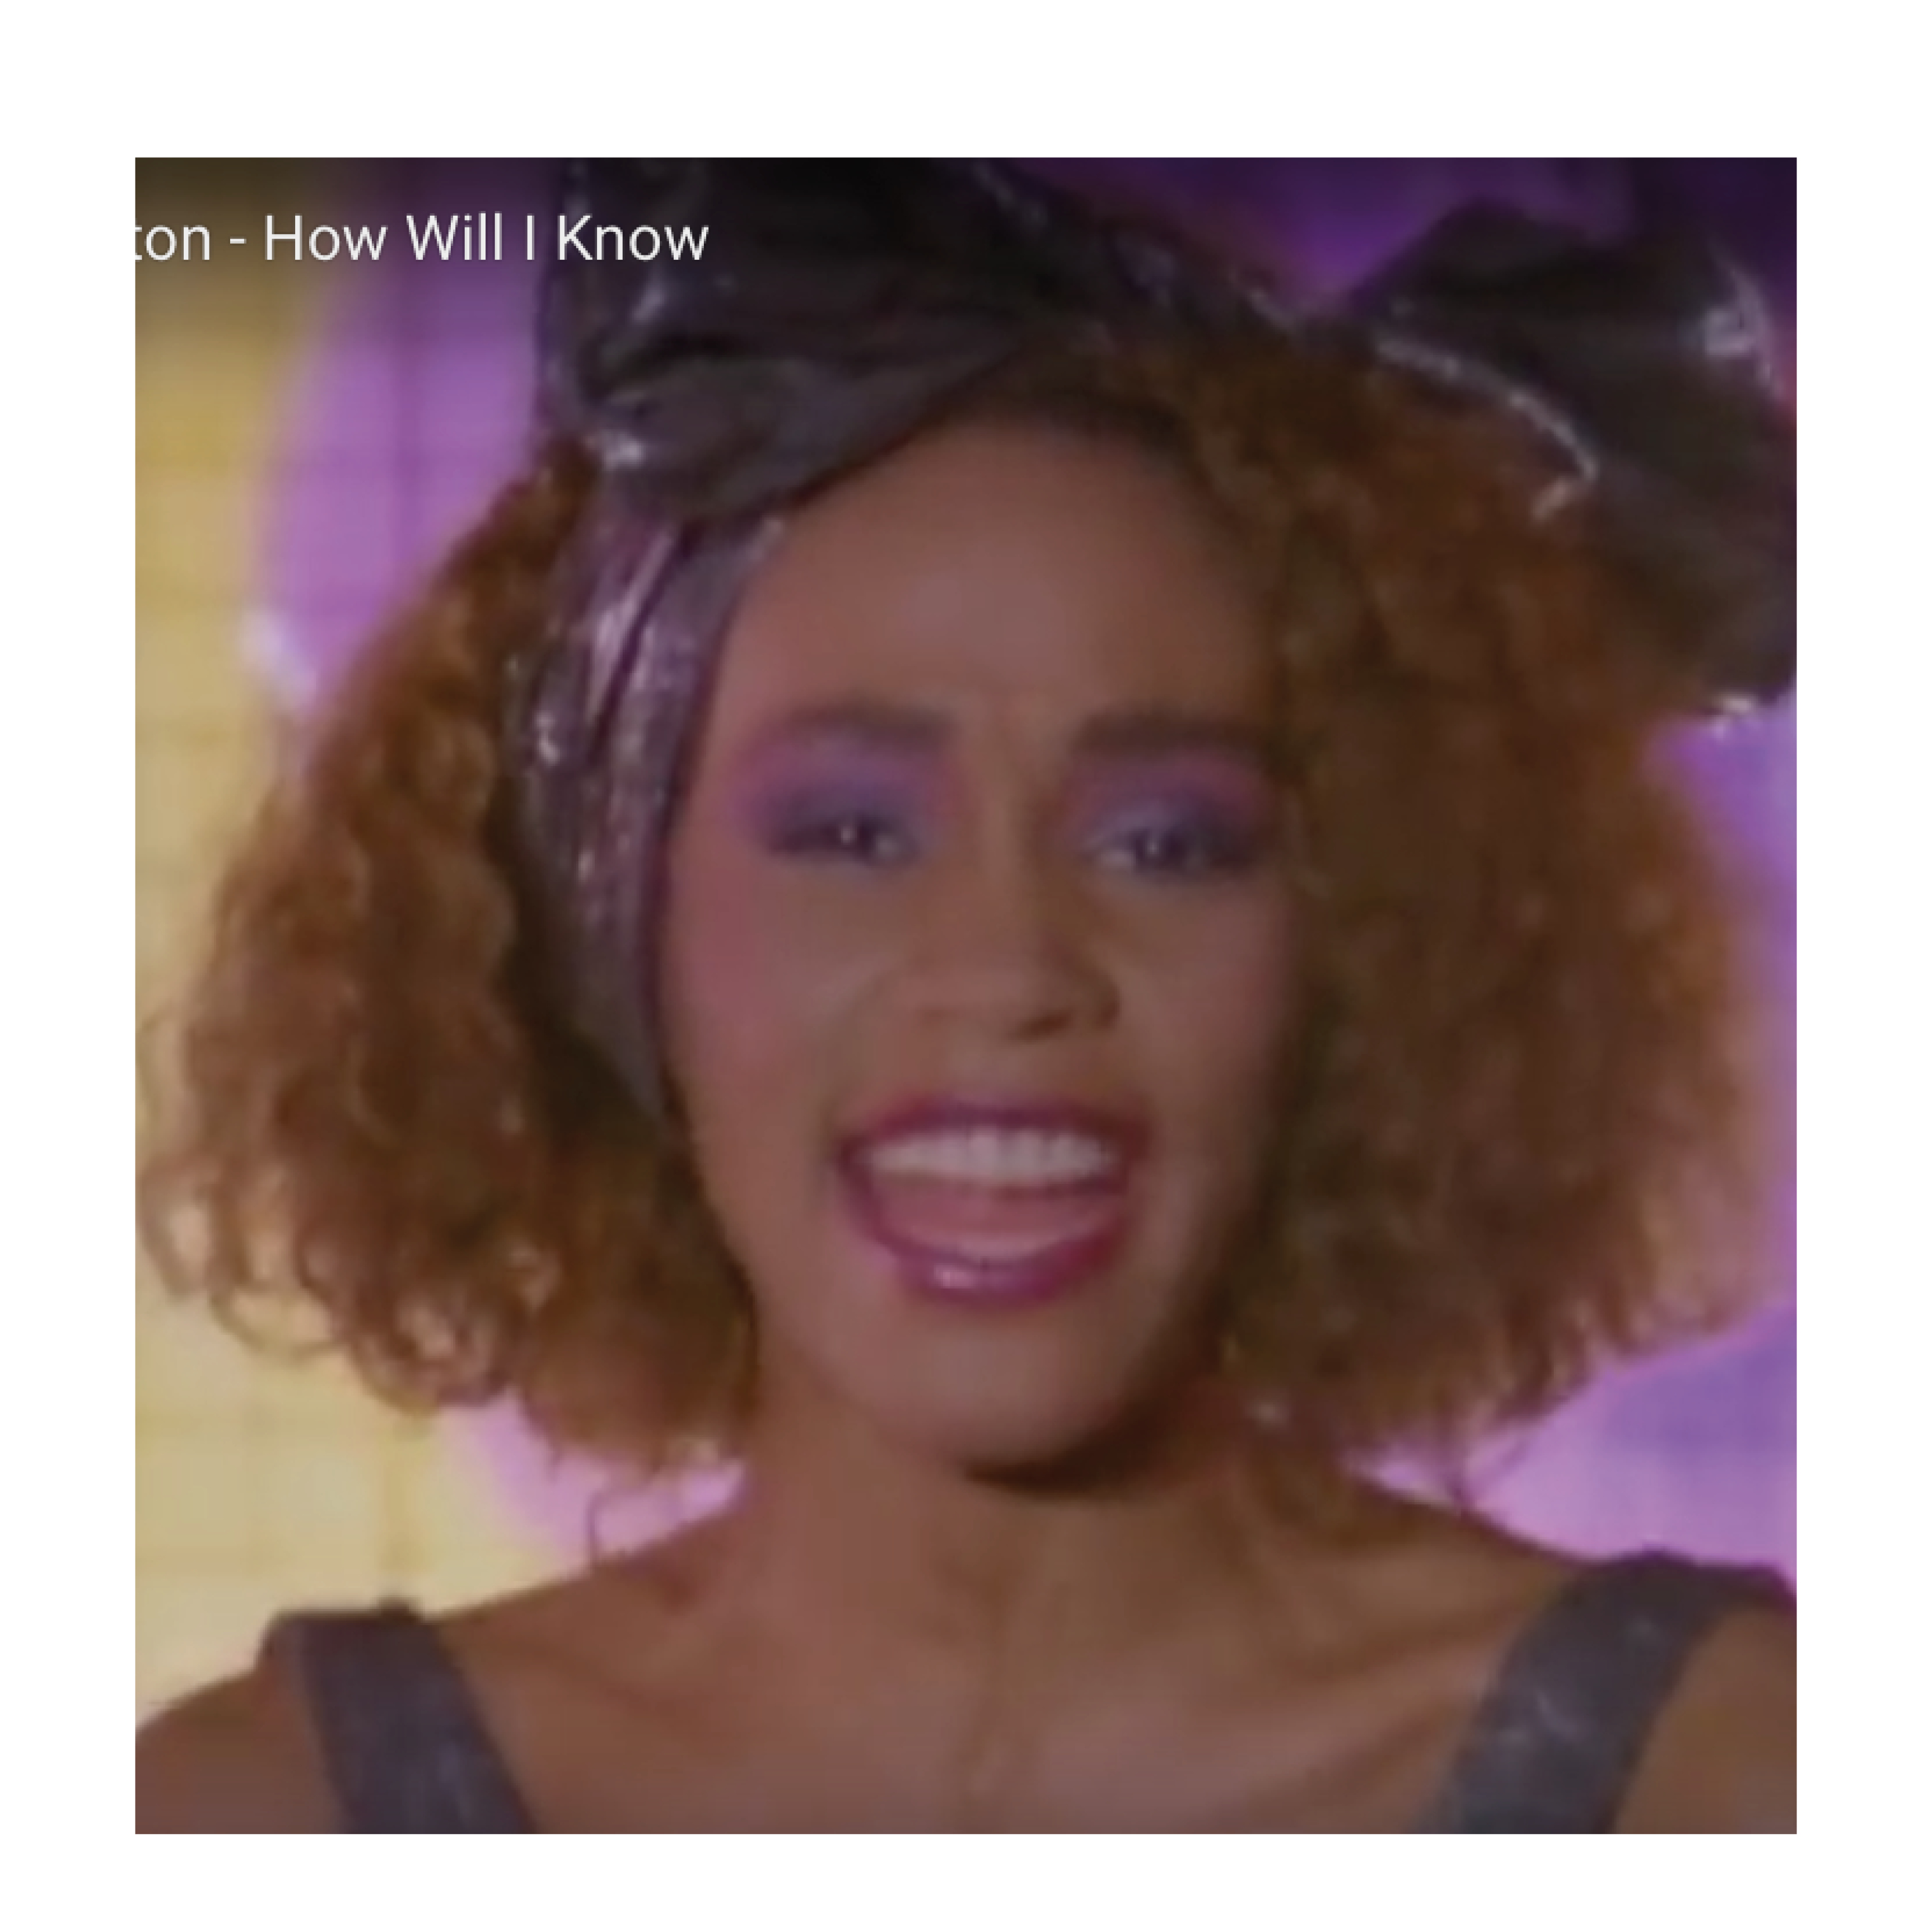 Whitney Houston dans le clip How will I know ?